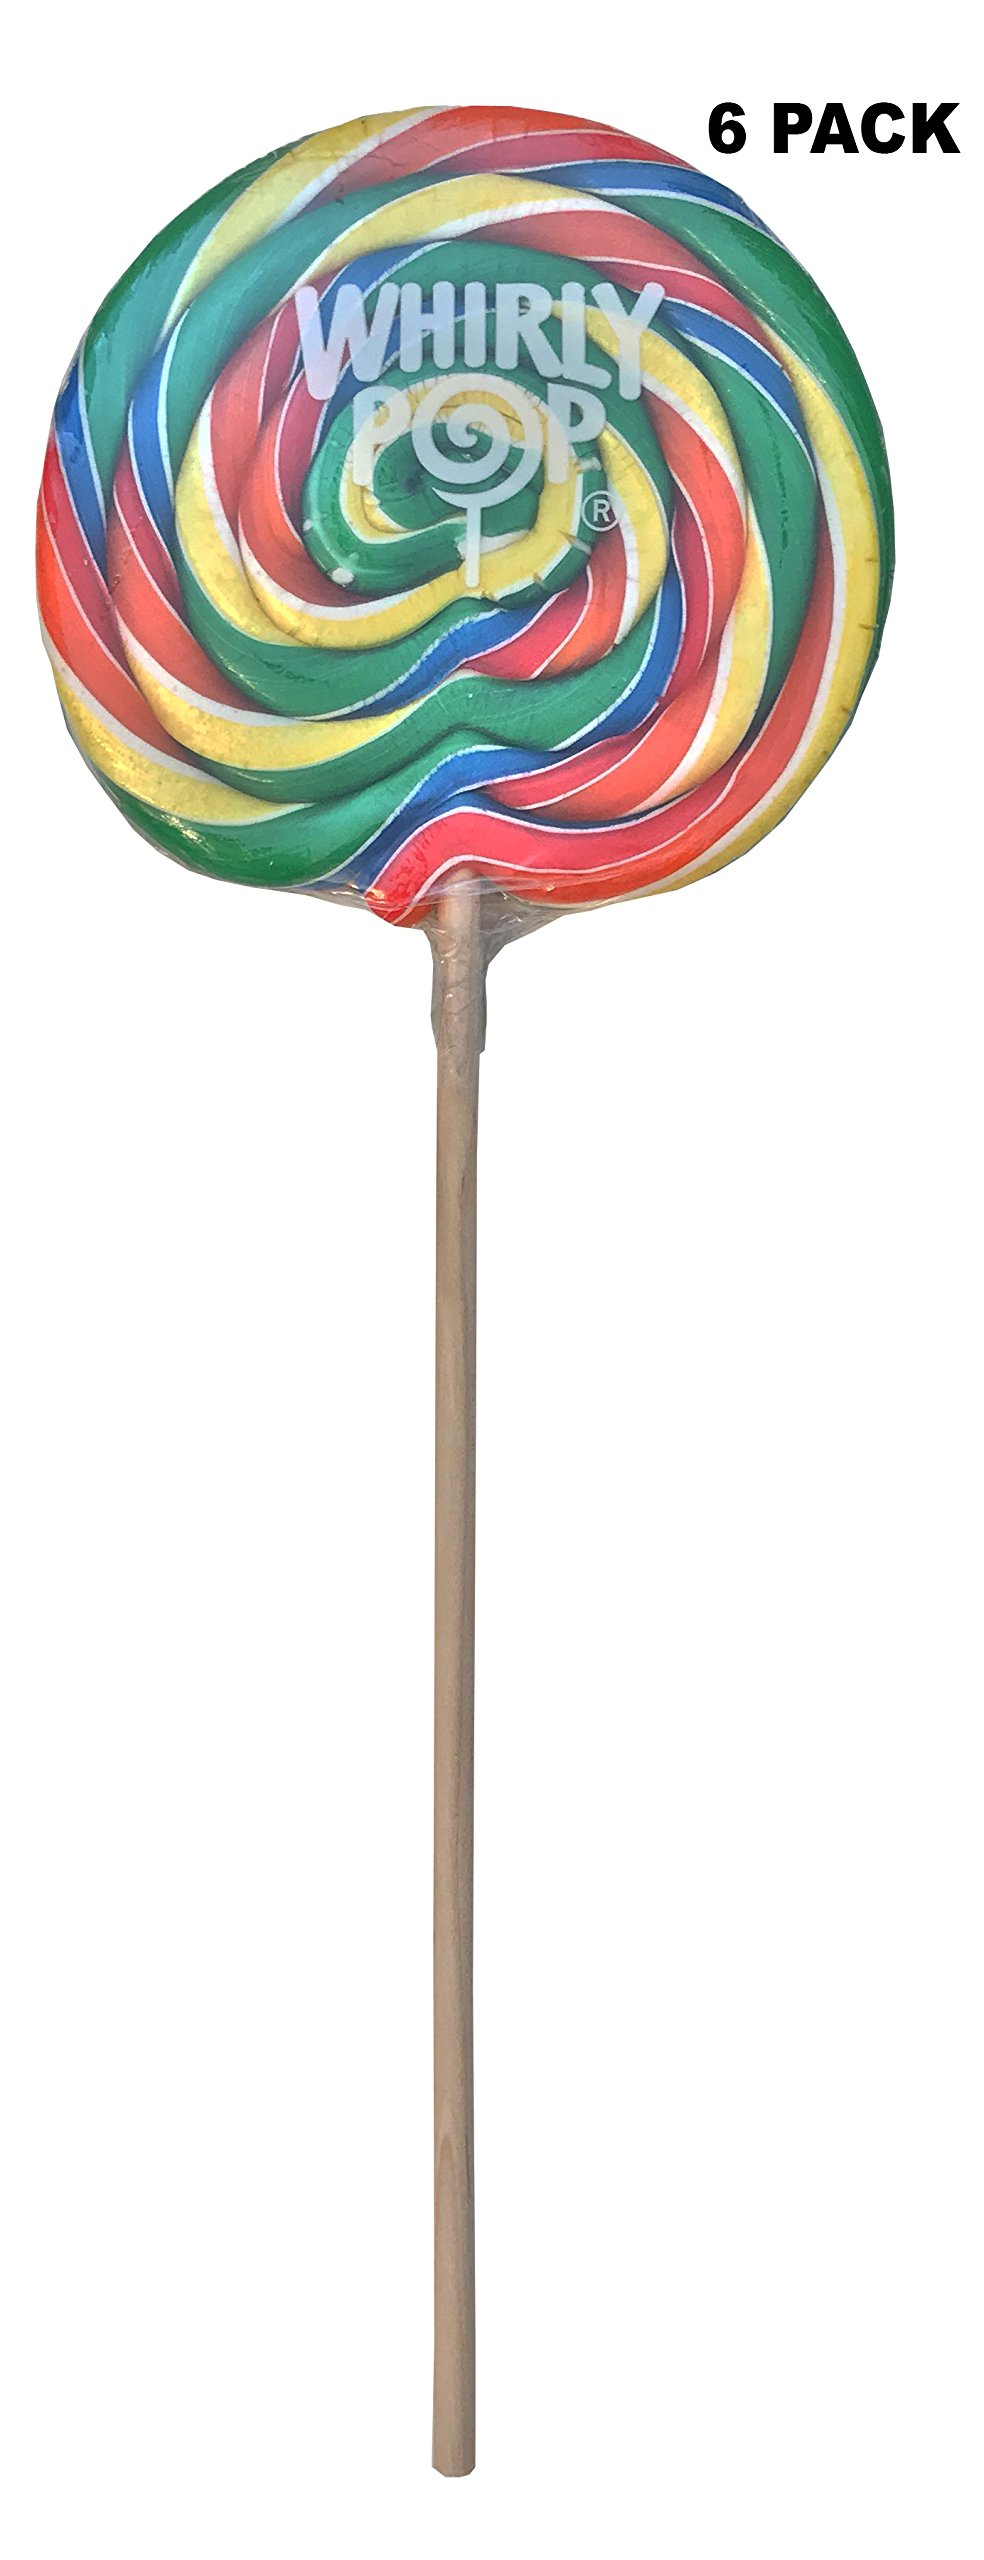 6 Pack Adams Brooks Whirly Pop Lollipop Rainbow Swirl Party Candy 10 Oz